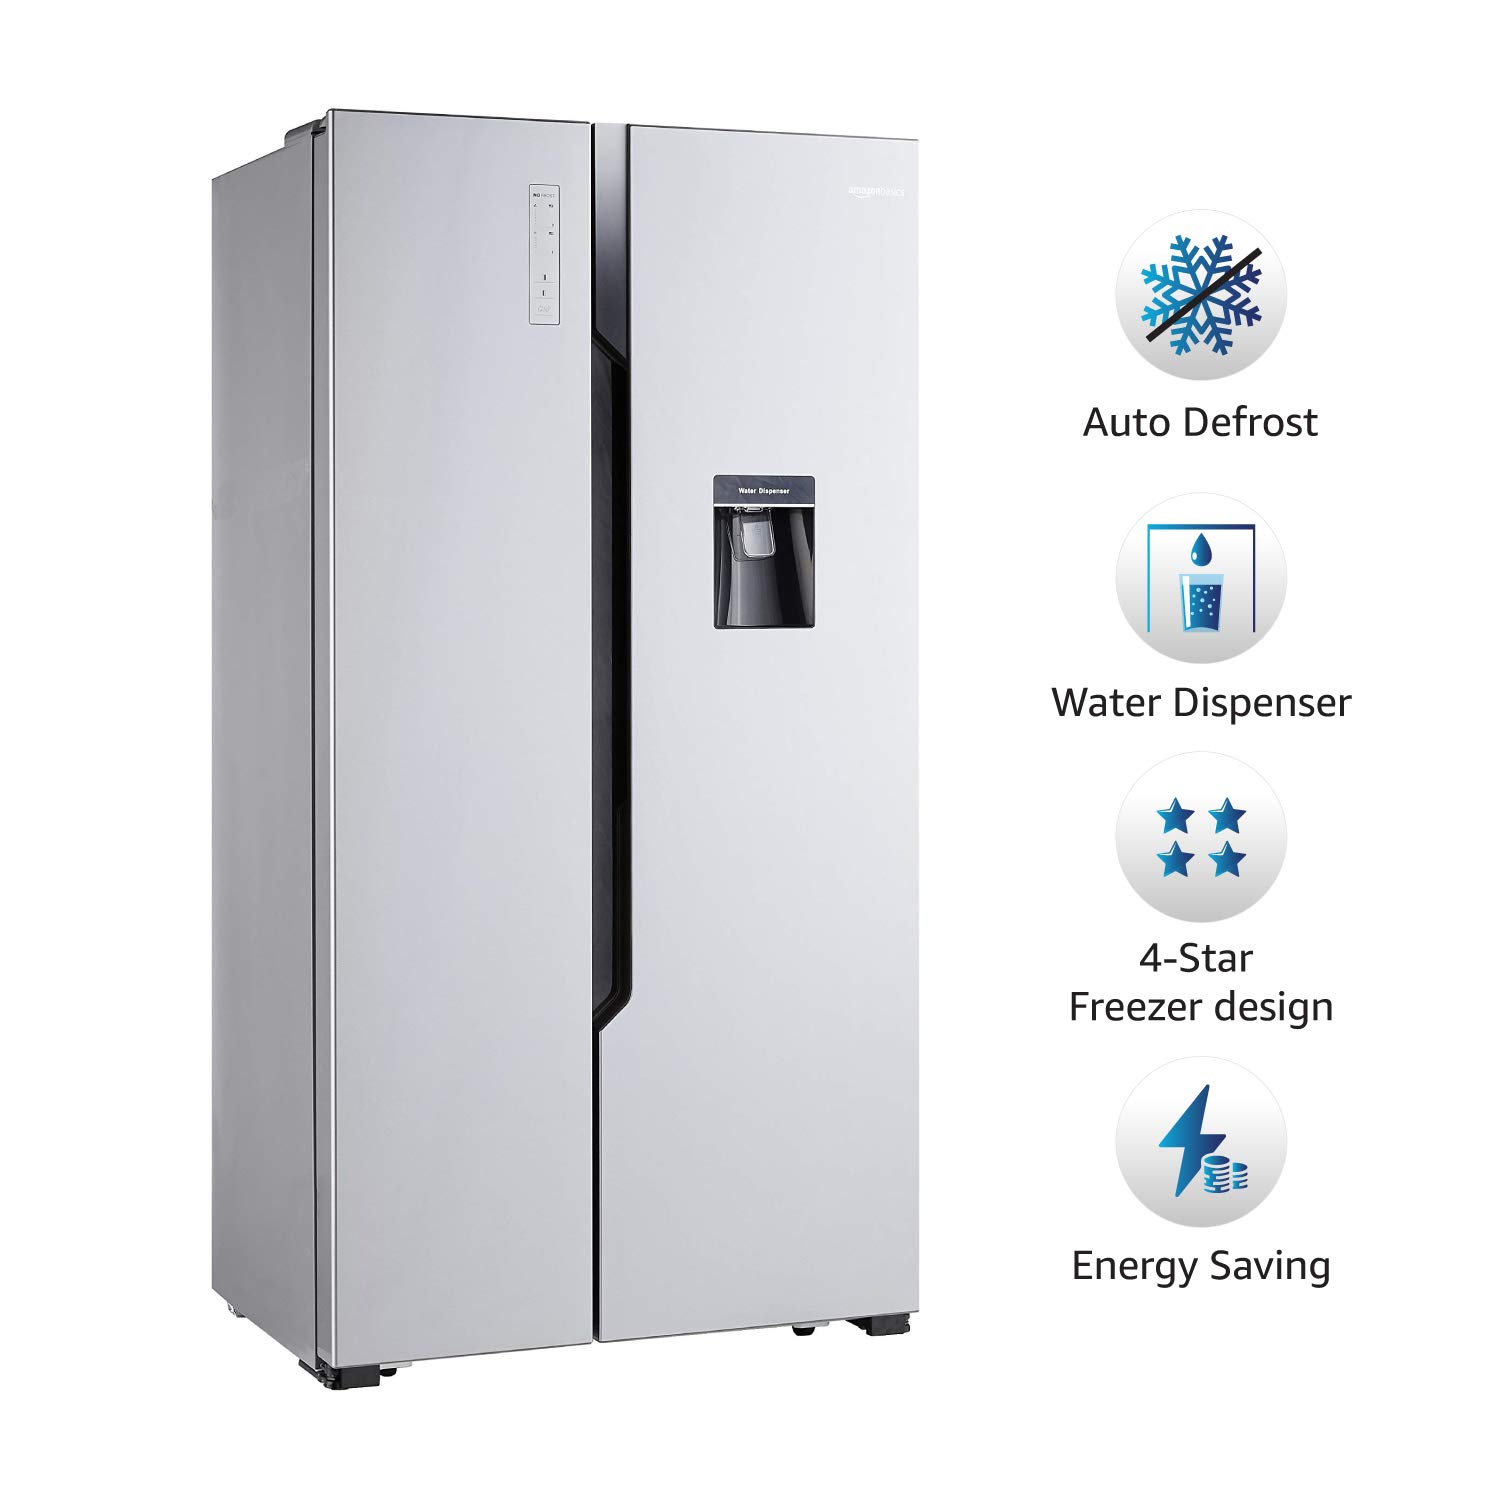 Buy Large Appliances Refrigerators AmazonBasics 564 L Frost Free Side-by-Side Refrigerator with Water Dispenser Silver